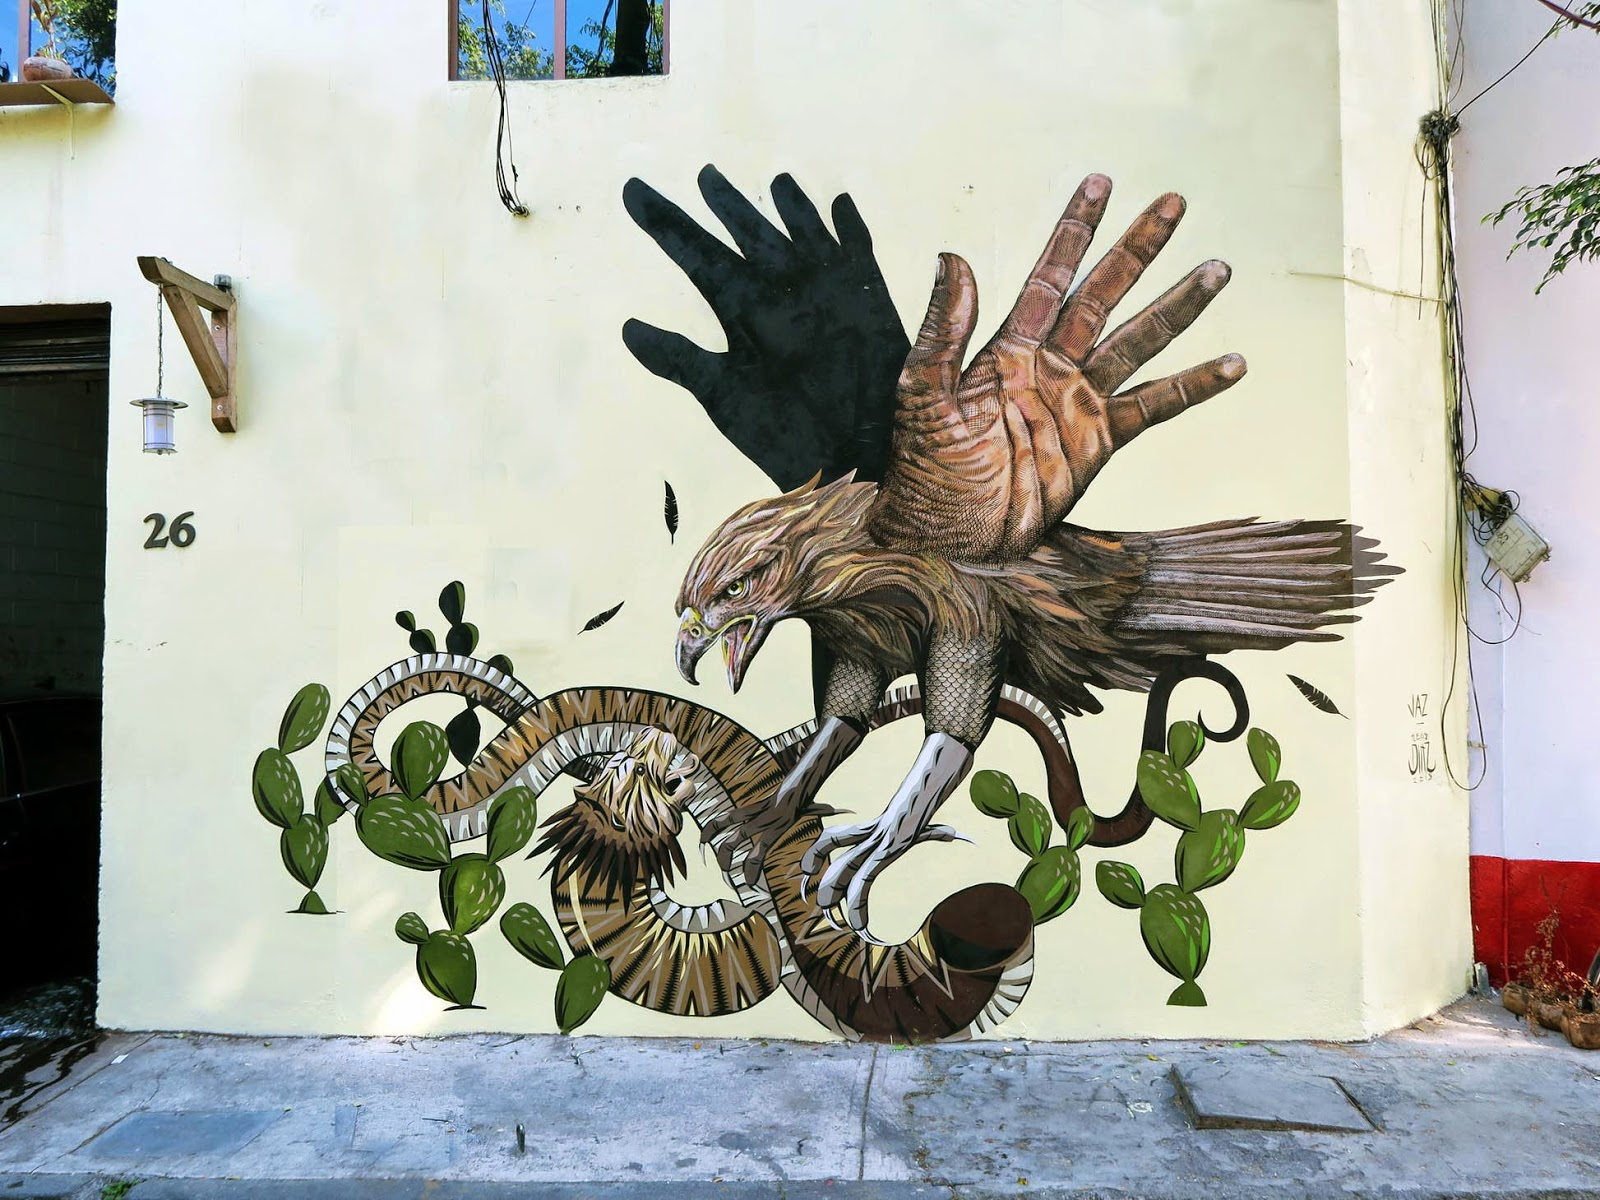 jaz-alexis-diaz-new-mural-in-mexico-city-01